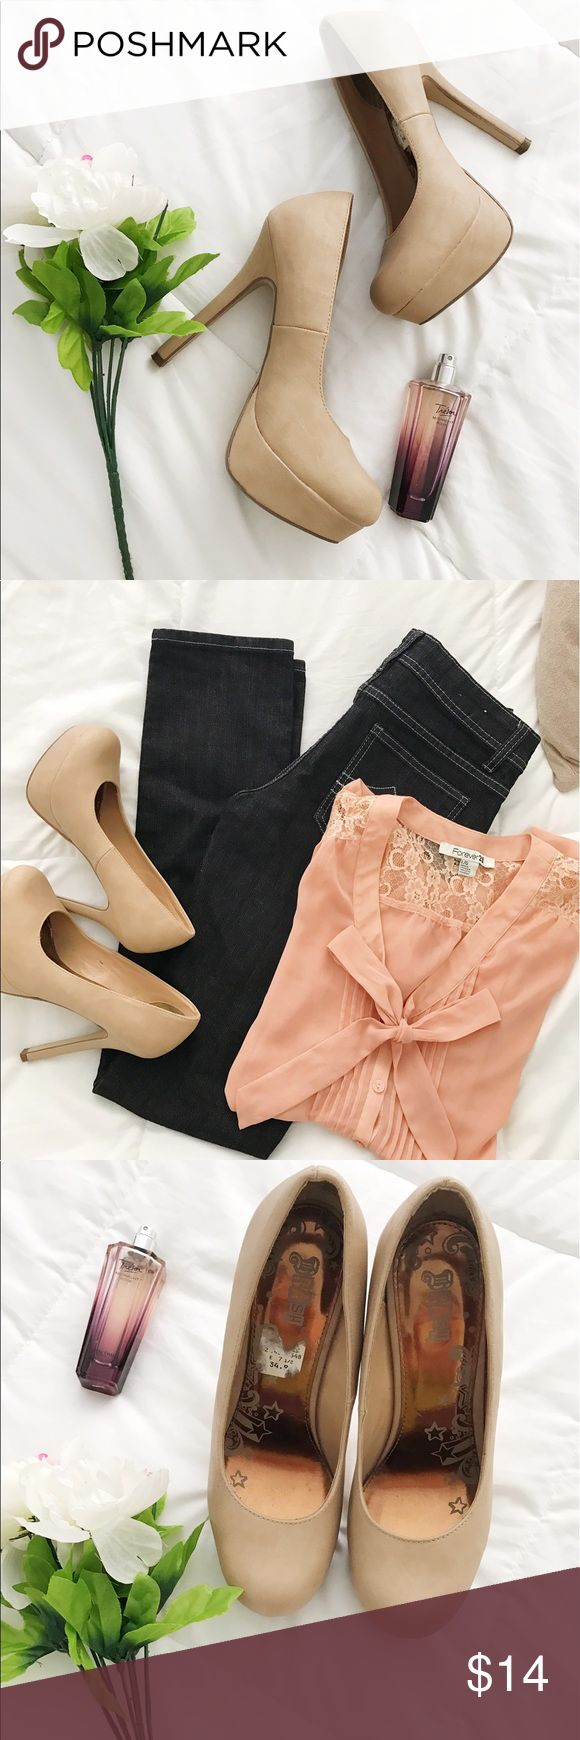 🎀 Nude Heels🎀 Platform High Heels, worn once in good condition, Nude Color, Perfect for going out or events, paired with dresses or jeans 🎀🛍 Shoes Platforms